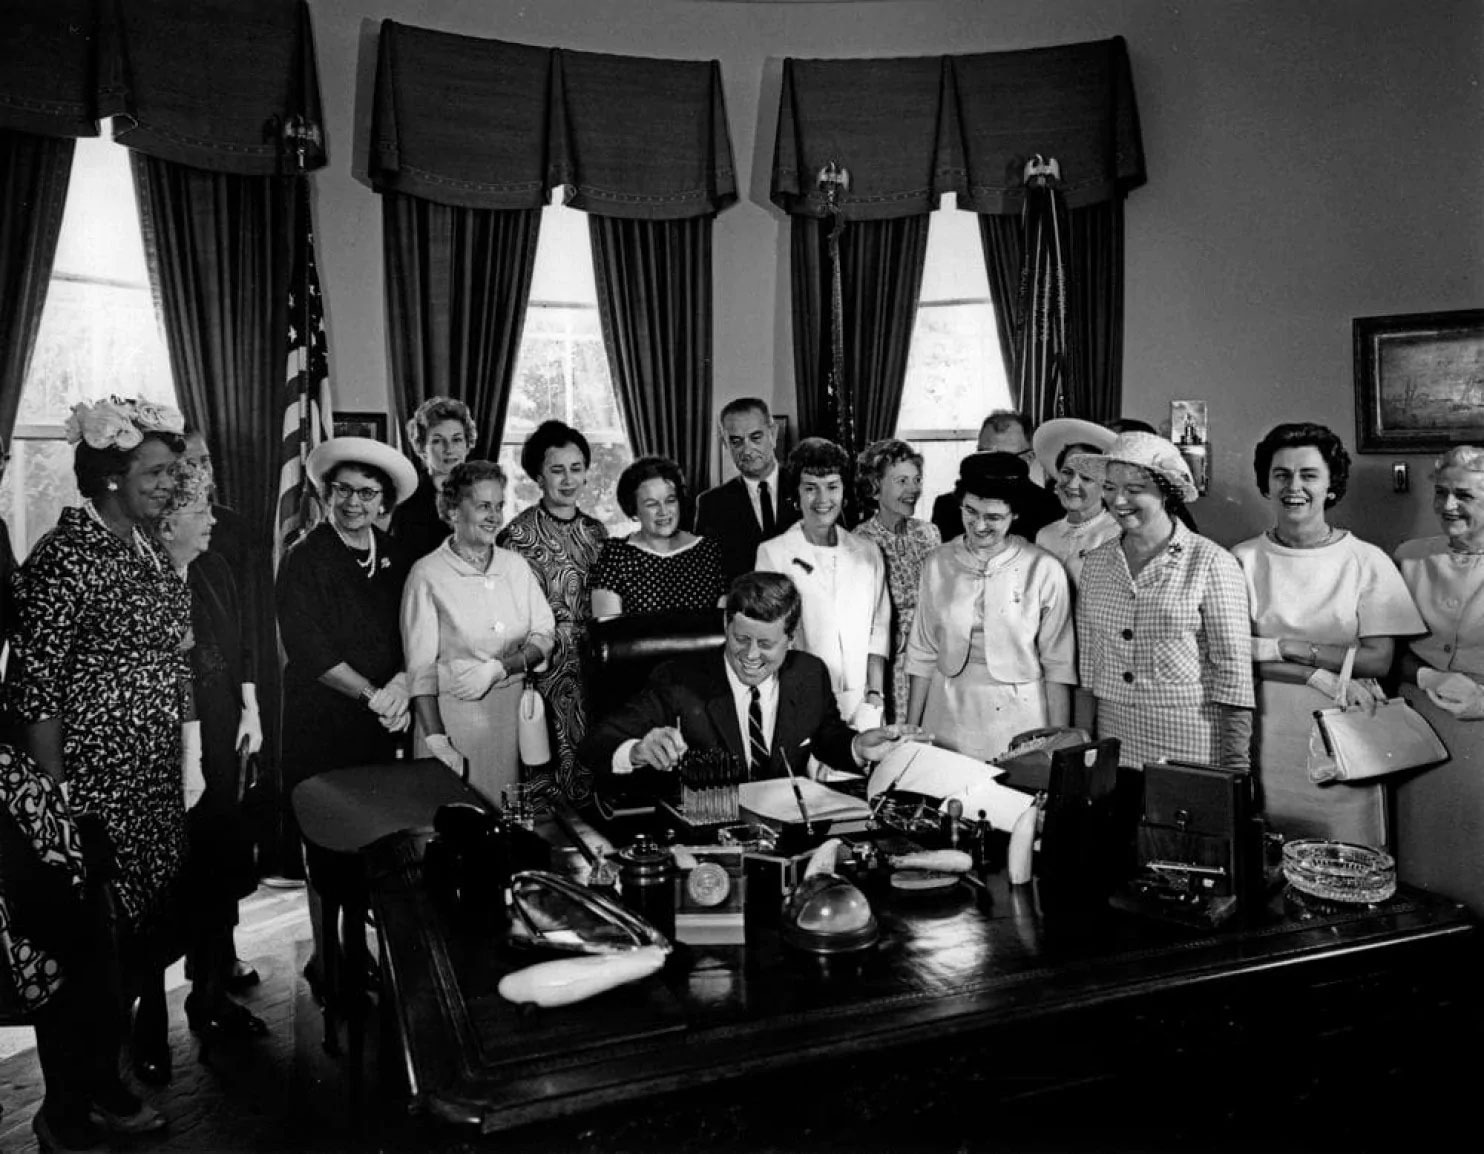 The President's Pen - American Association of University Women members with President John F. Kennedy as he signs the Equal Pay Act into law